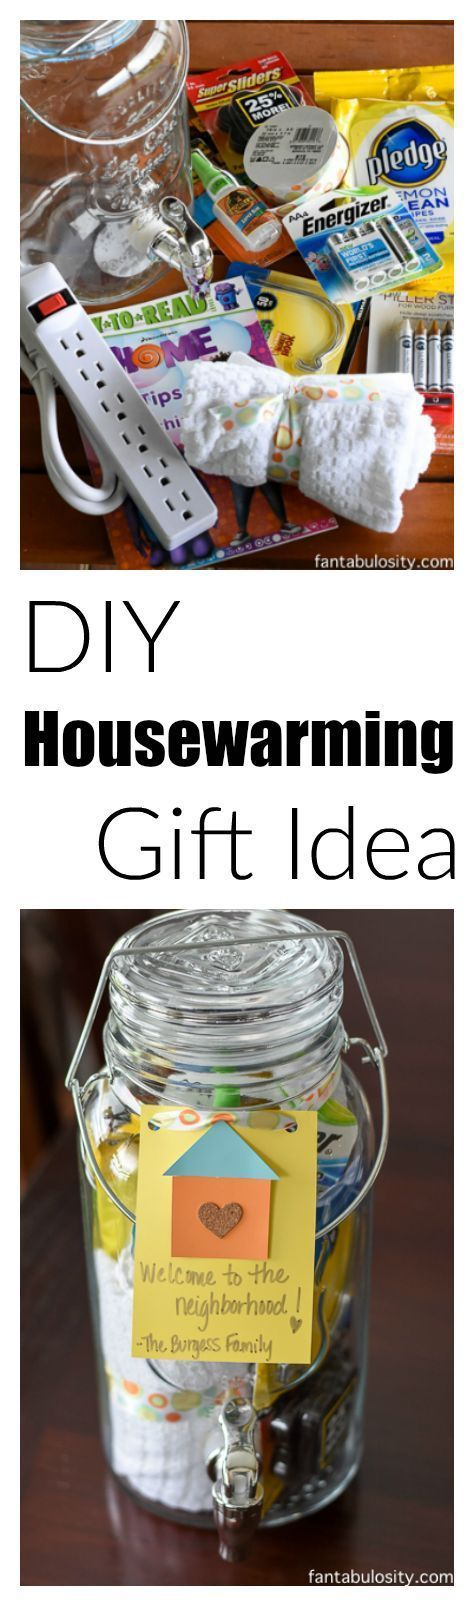 105 best housewarming gift ideas images on pinterest for Classic housewarming gifts